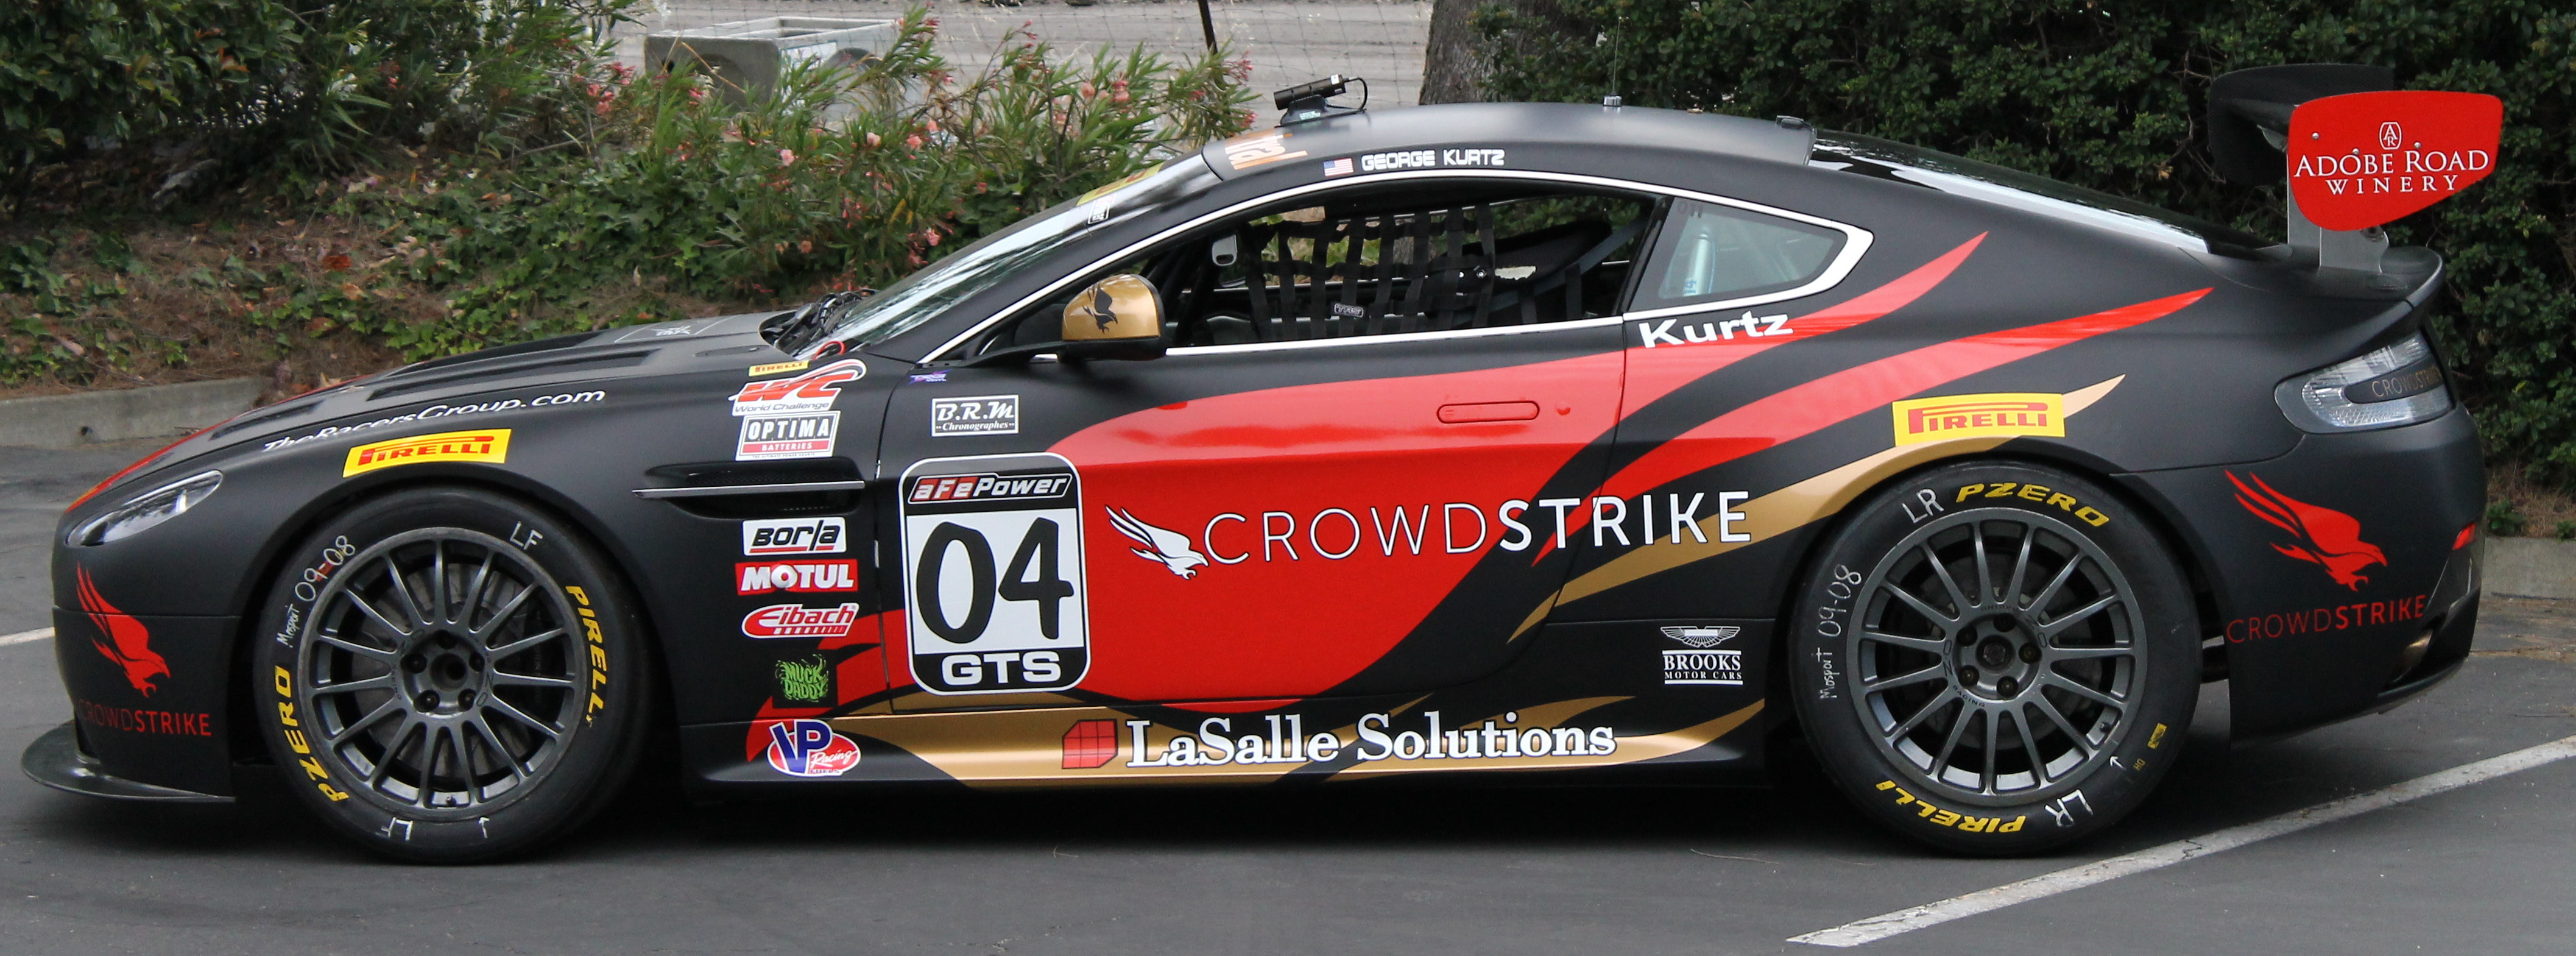 TRG Aston Martin Racing, CrowdStrike CEO George Kurtz Partner For PWC